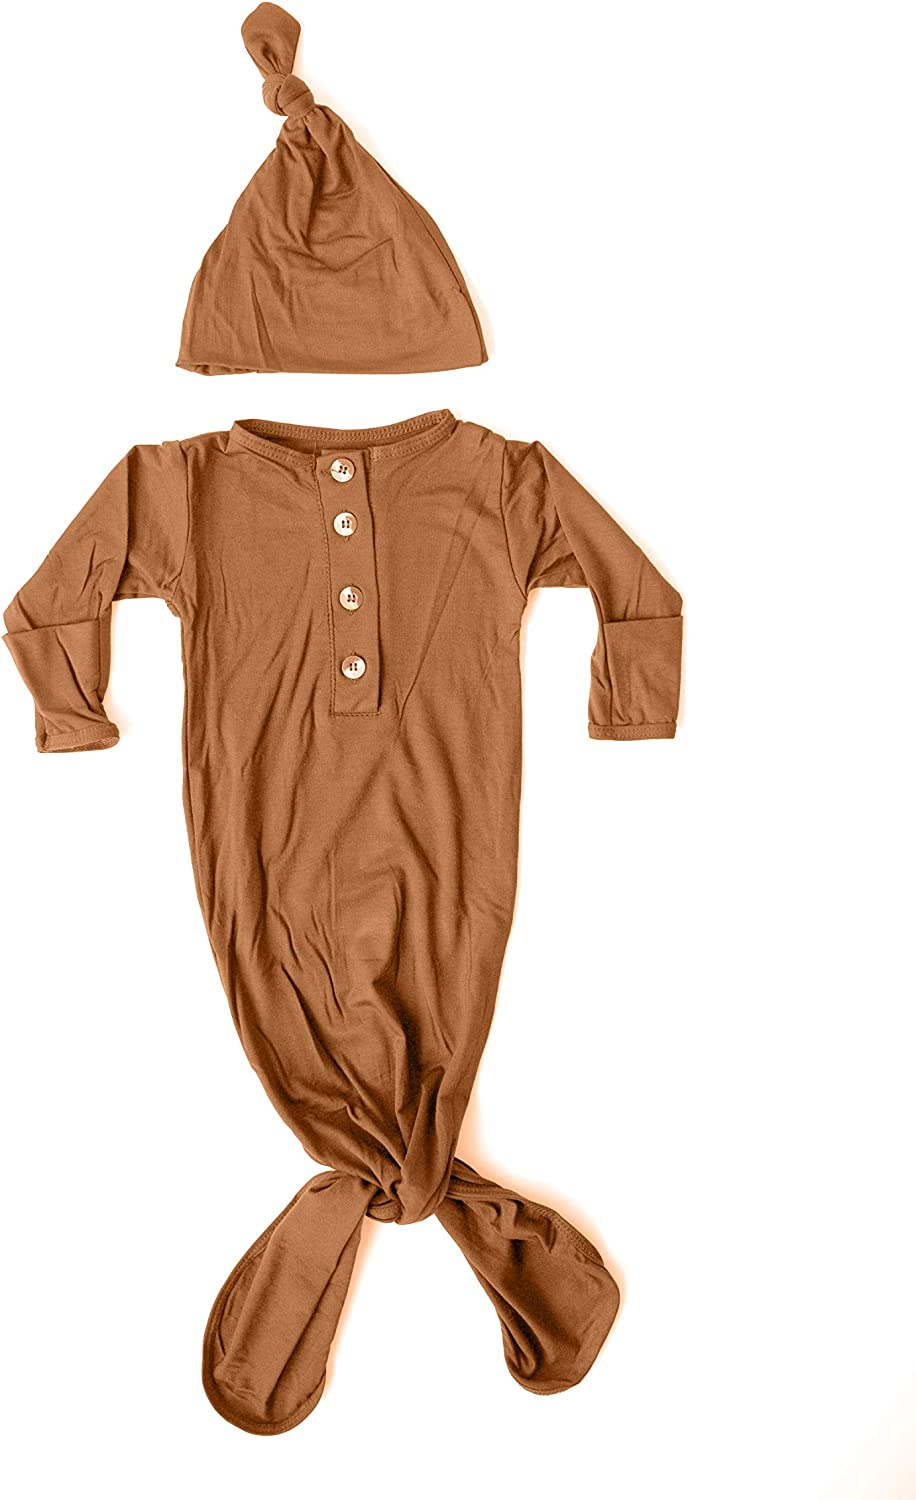 Stroller Society Knotted Newborn Baby Gown and Hat Set Camel Brown, Soft and Stretchy Newborn Sleep Gown 0-3 months, Coming Home Outfit Girl or Boy